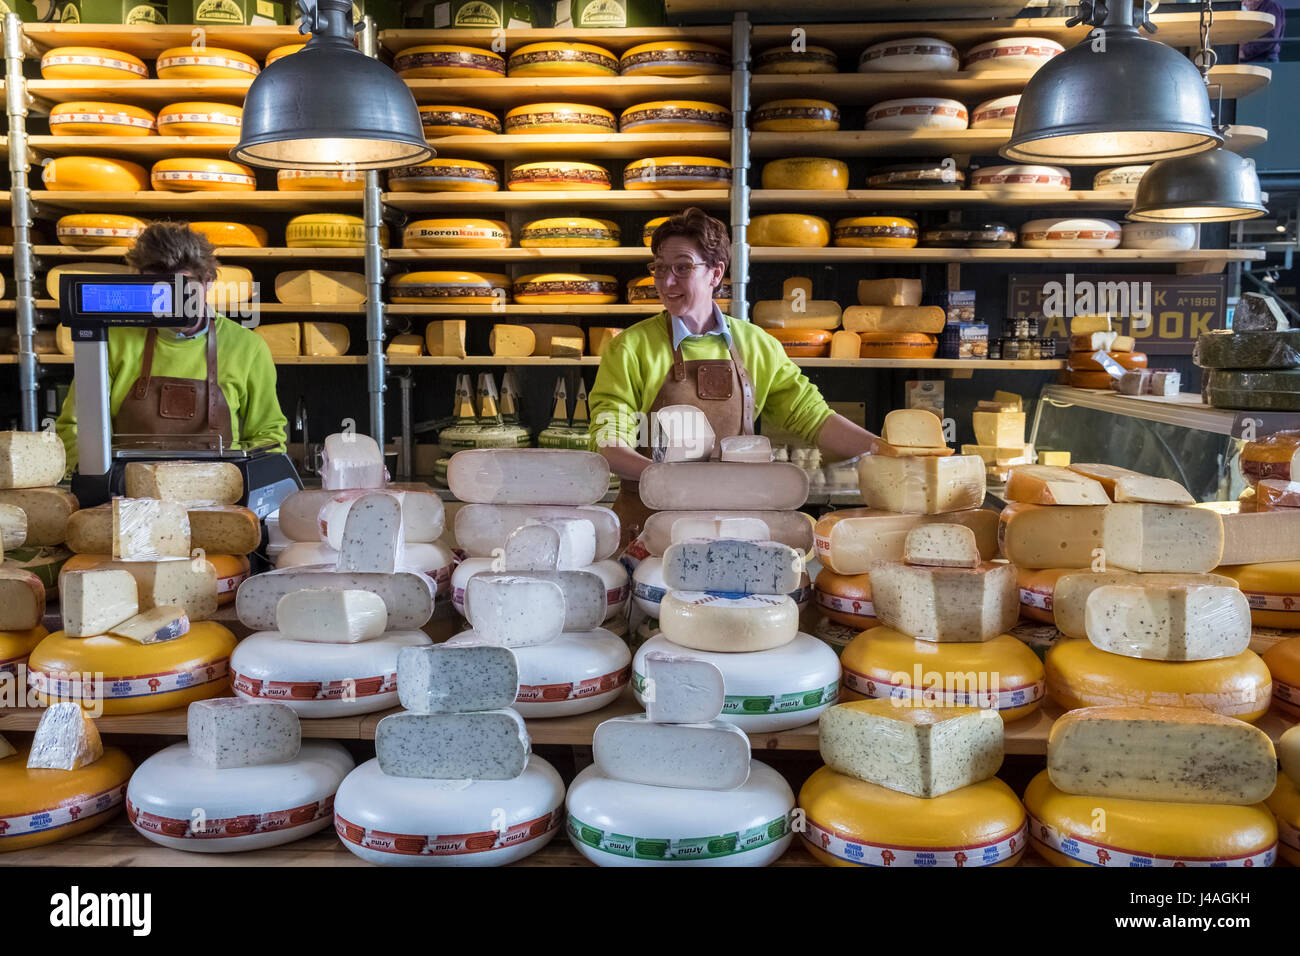 Cheese trader inside Markthal food market, Nieuwstraat, Rotterdam, The Netherlands - Stock Image